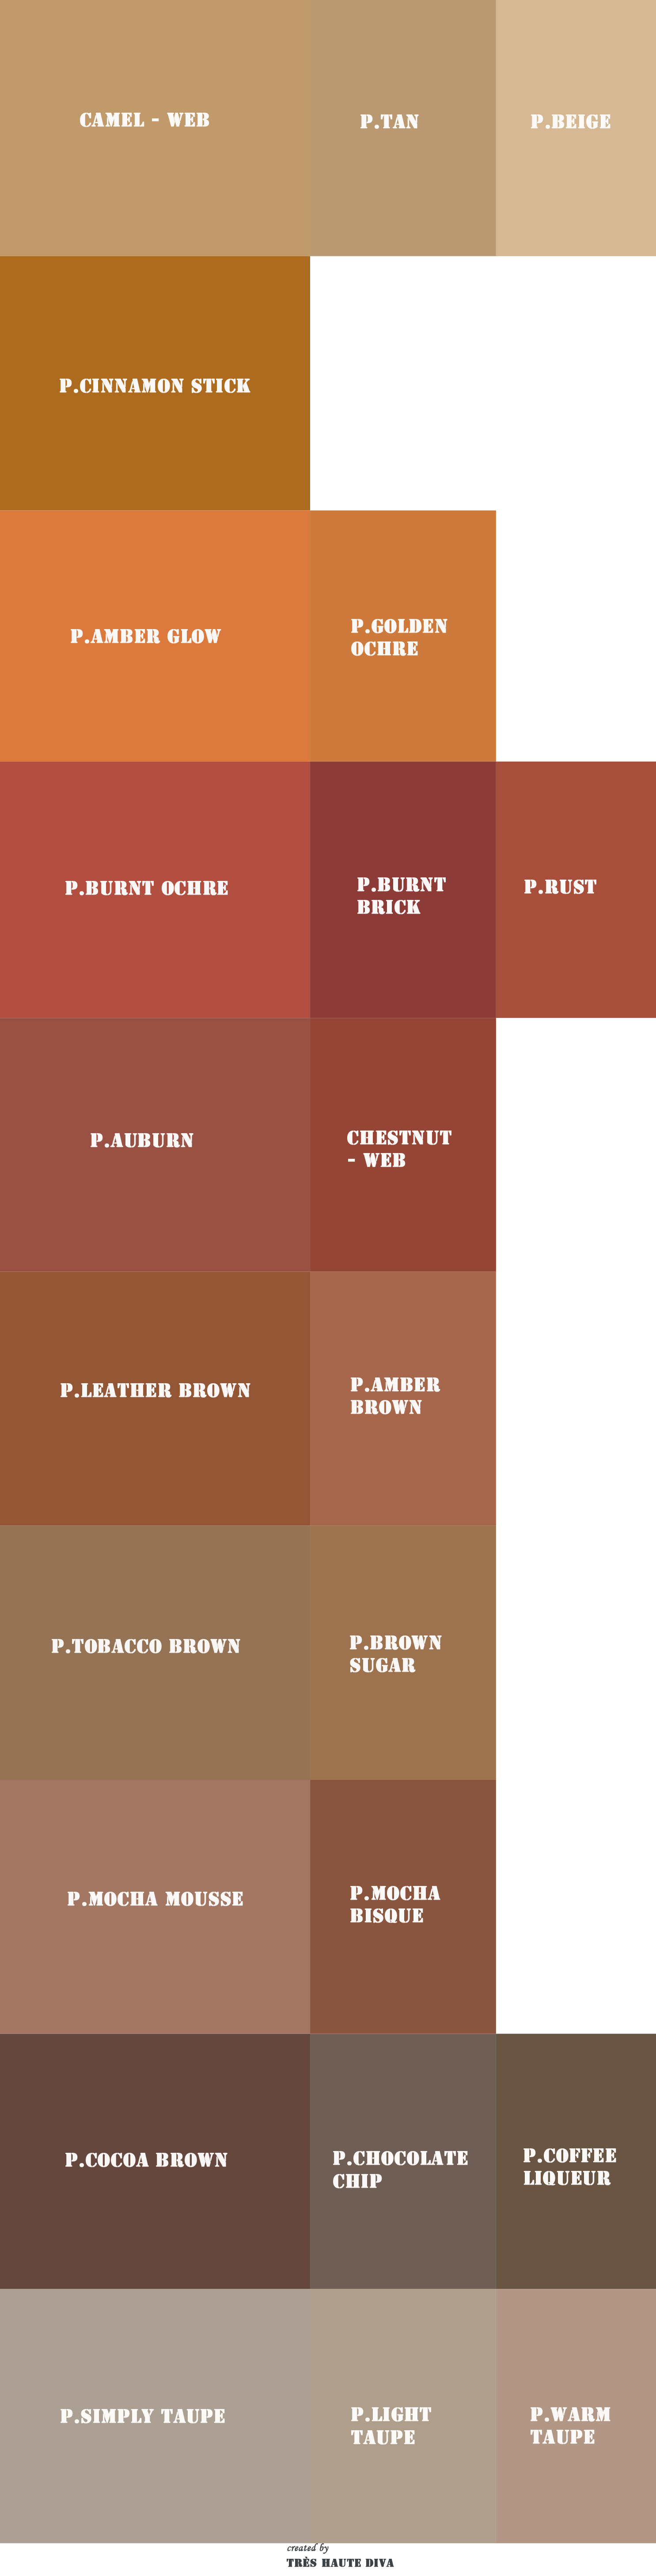 My Brown Pantone P And Web Reference Colors By The Way As Well Are Sometimes Off From Wikipedia